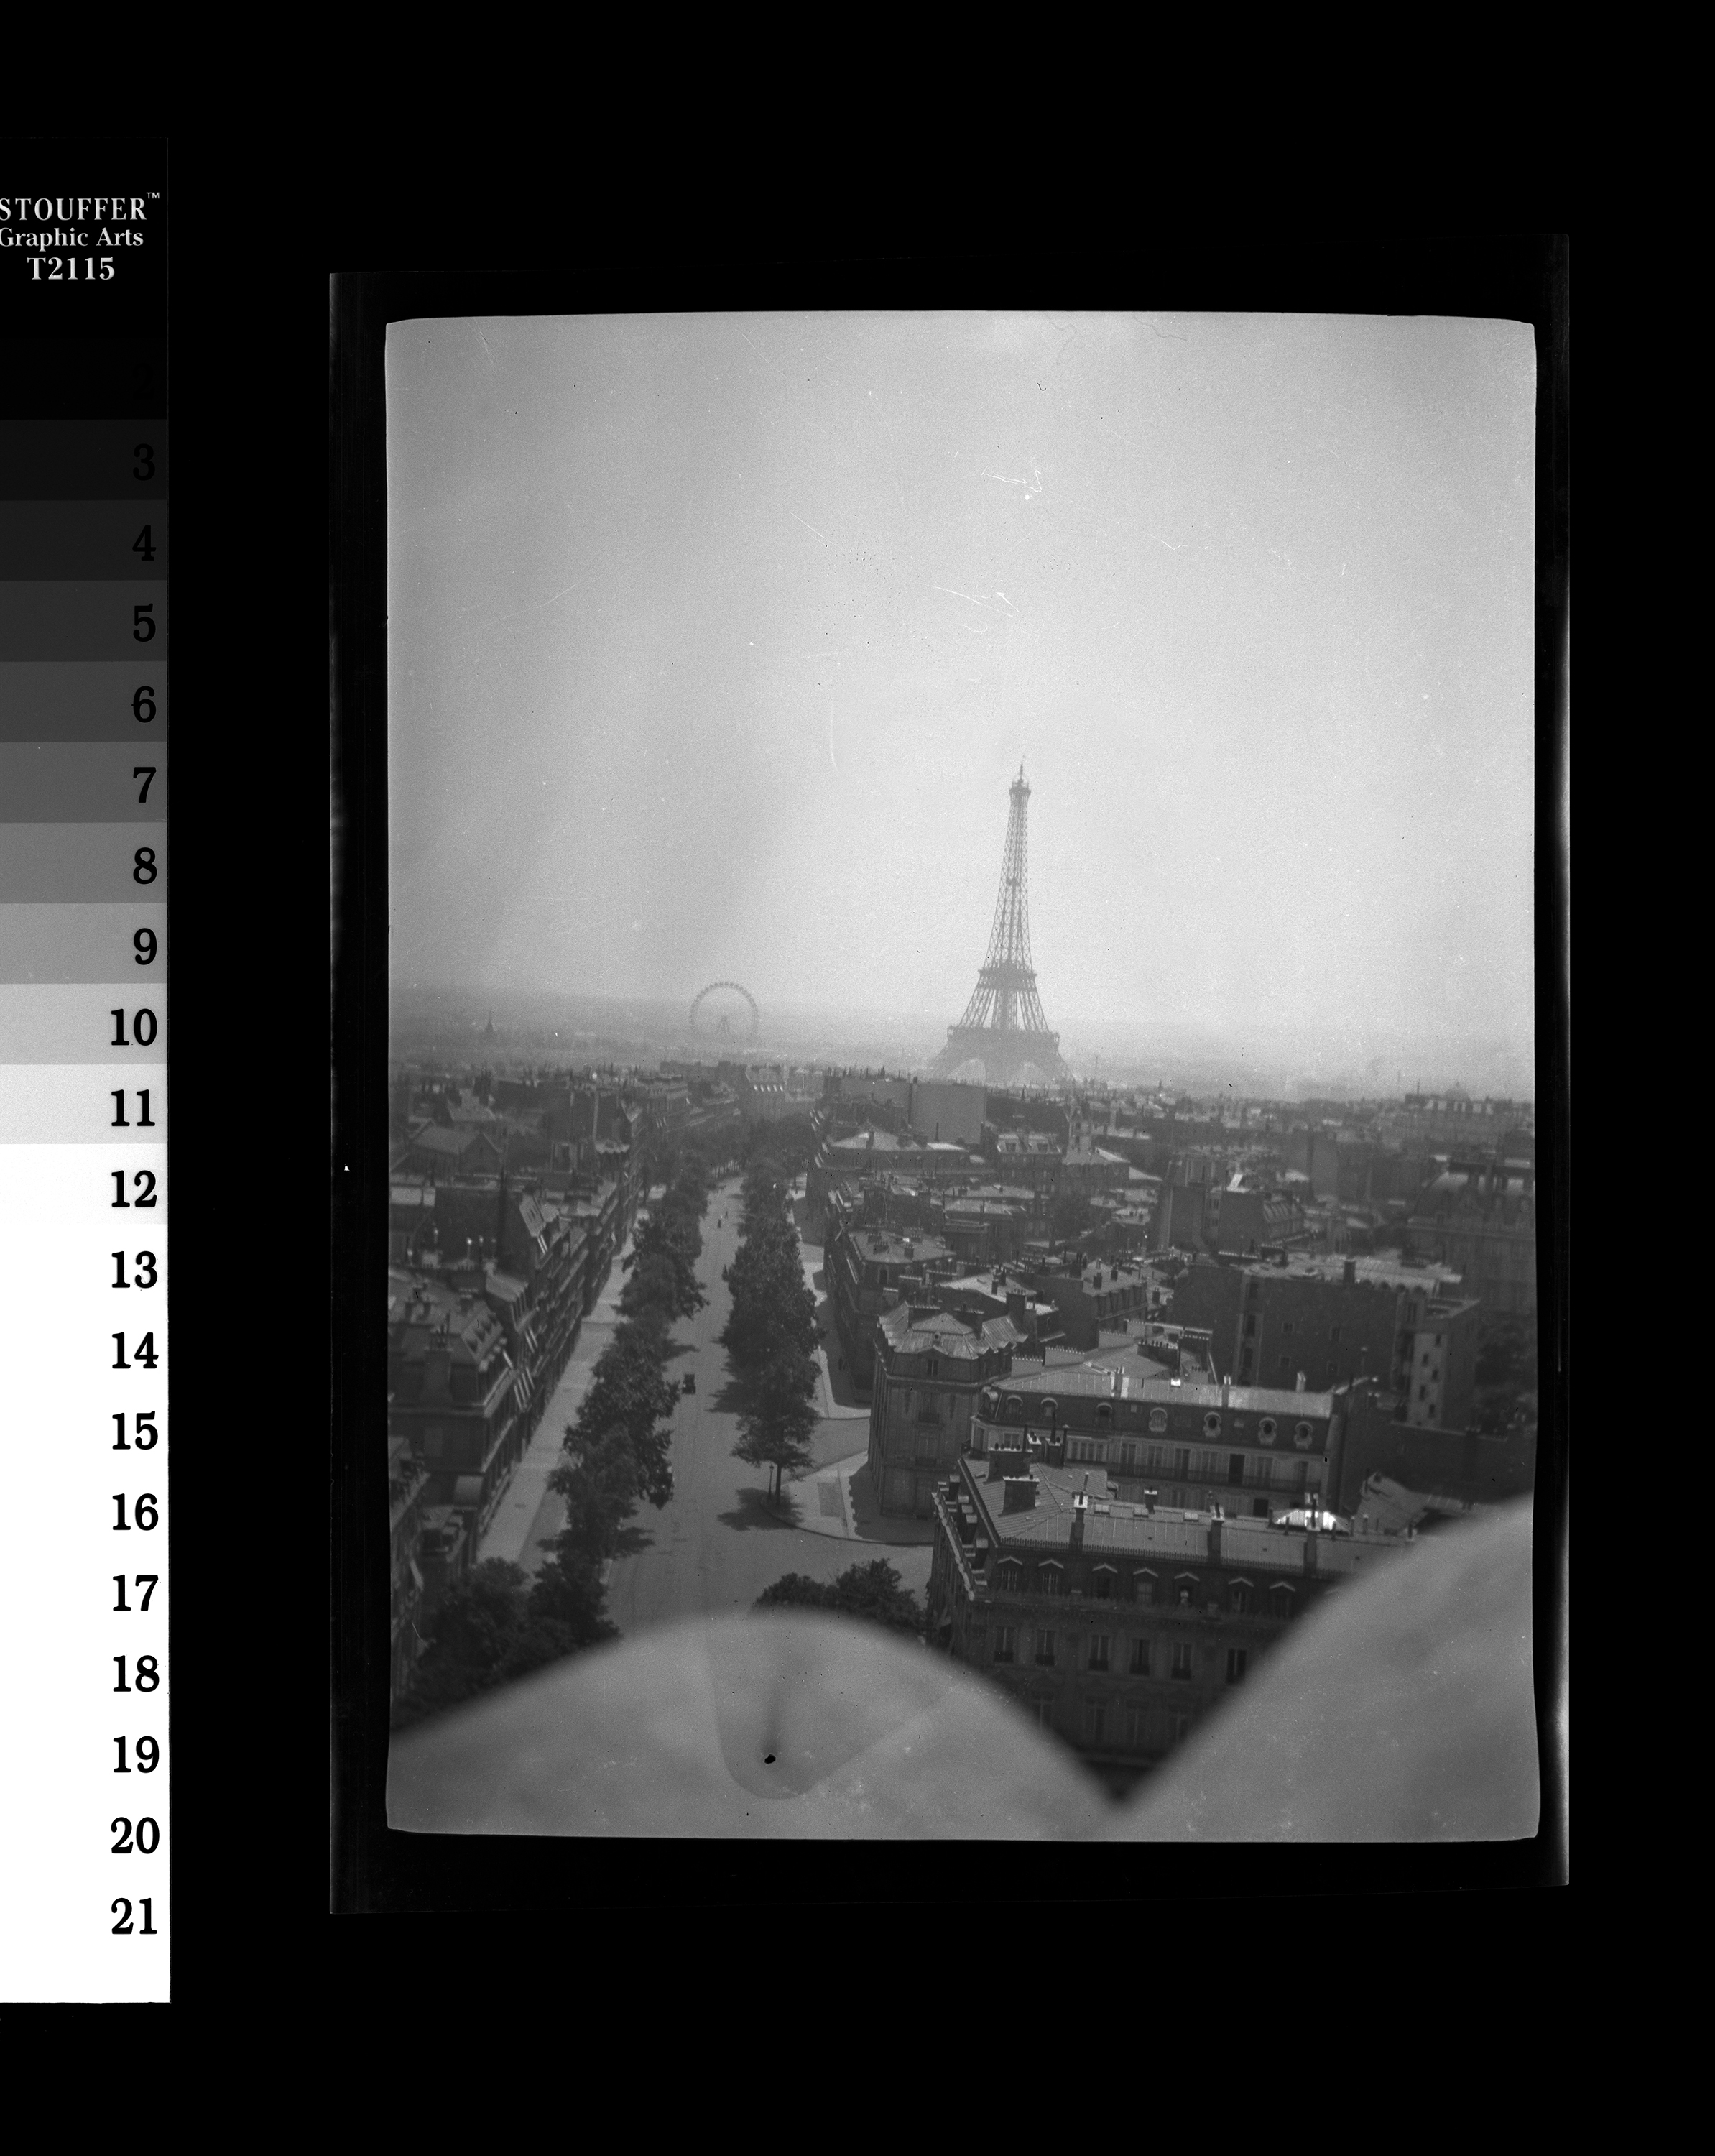 KFC1471N. View of the Eiffel Tower and Grand Roue de Paris Ferris Wheel, during Rose Fitzgerald's school year abroad. Paris, France, ca. 1908-1909 1 negative (black-and-white; 3 x 4 inches; film/plastic: nitrate) © John F. Kennedy Library Foundation